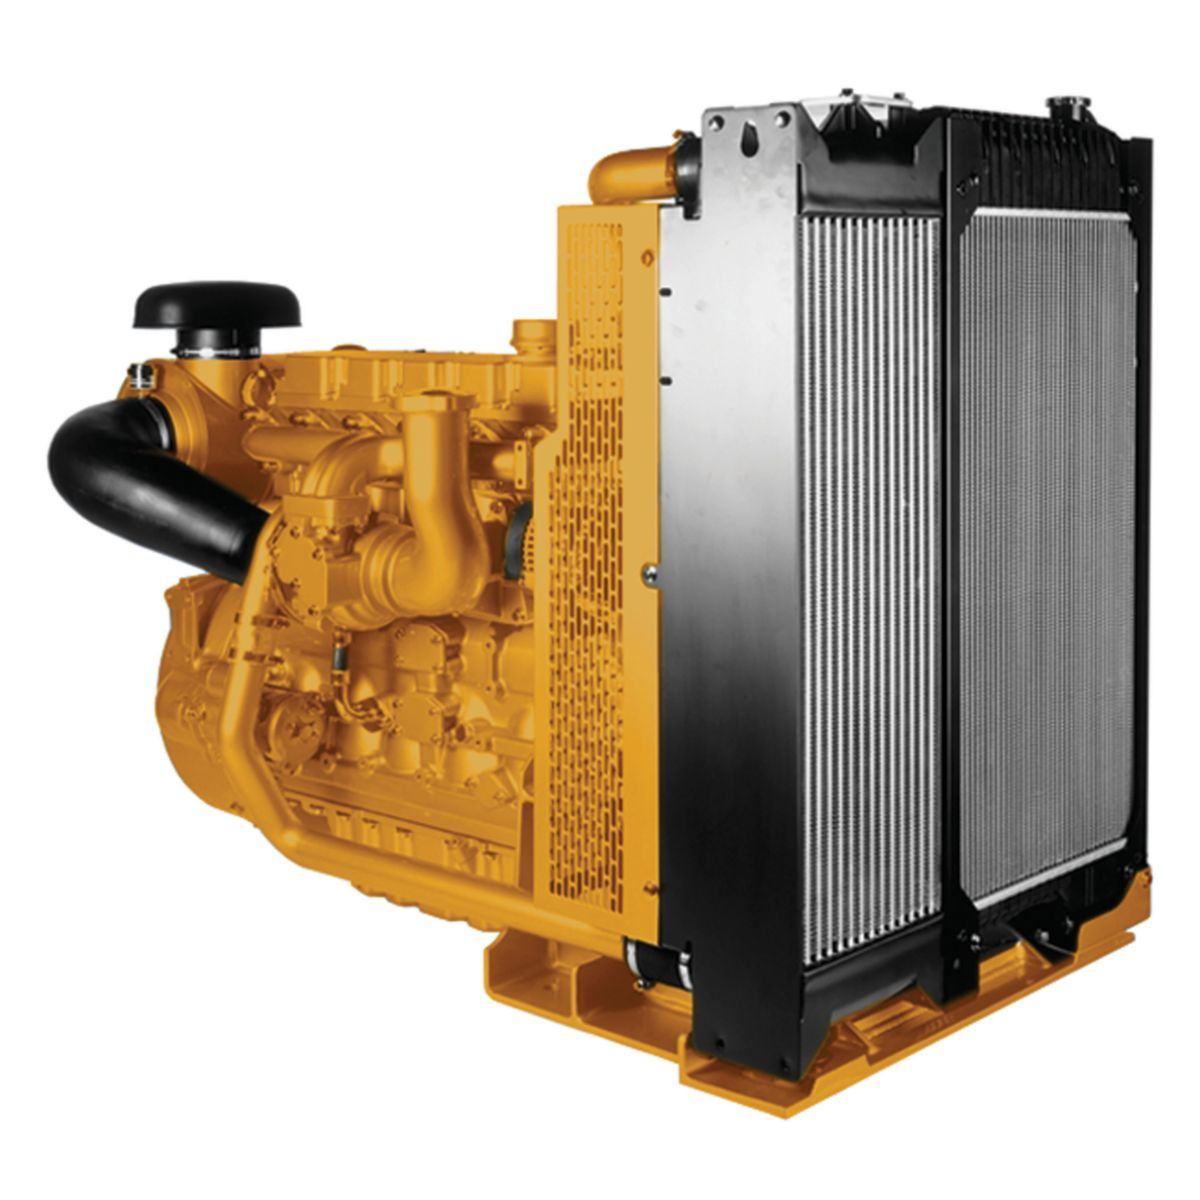 C6.6 LRC Industrial Power Unit  Diesel Power Units - Lesser Regulated & Non-Regulated